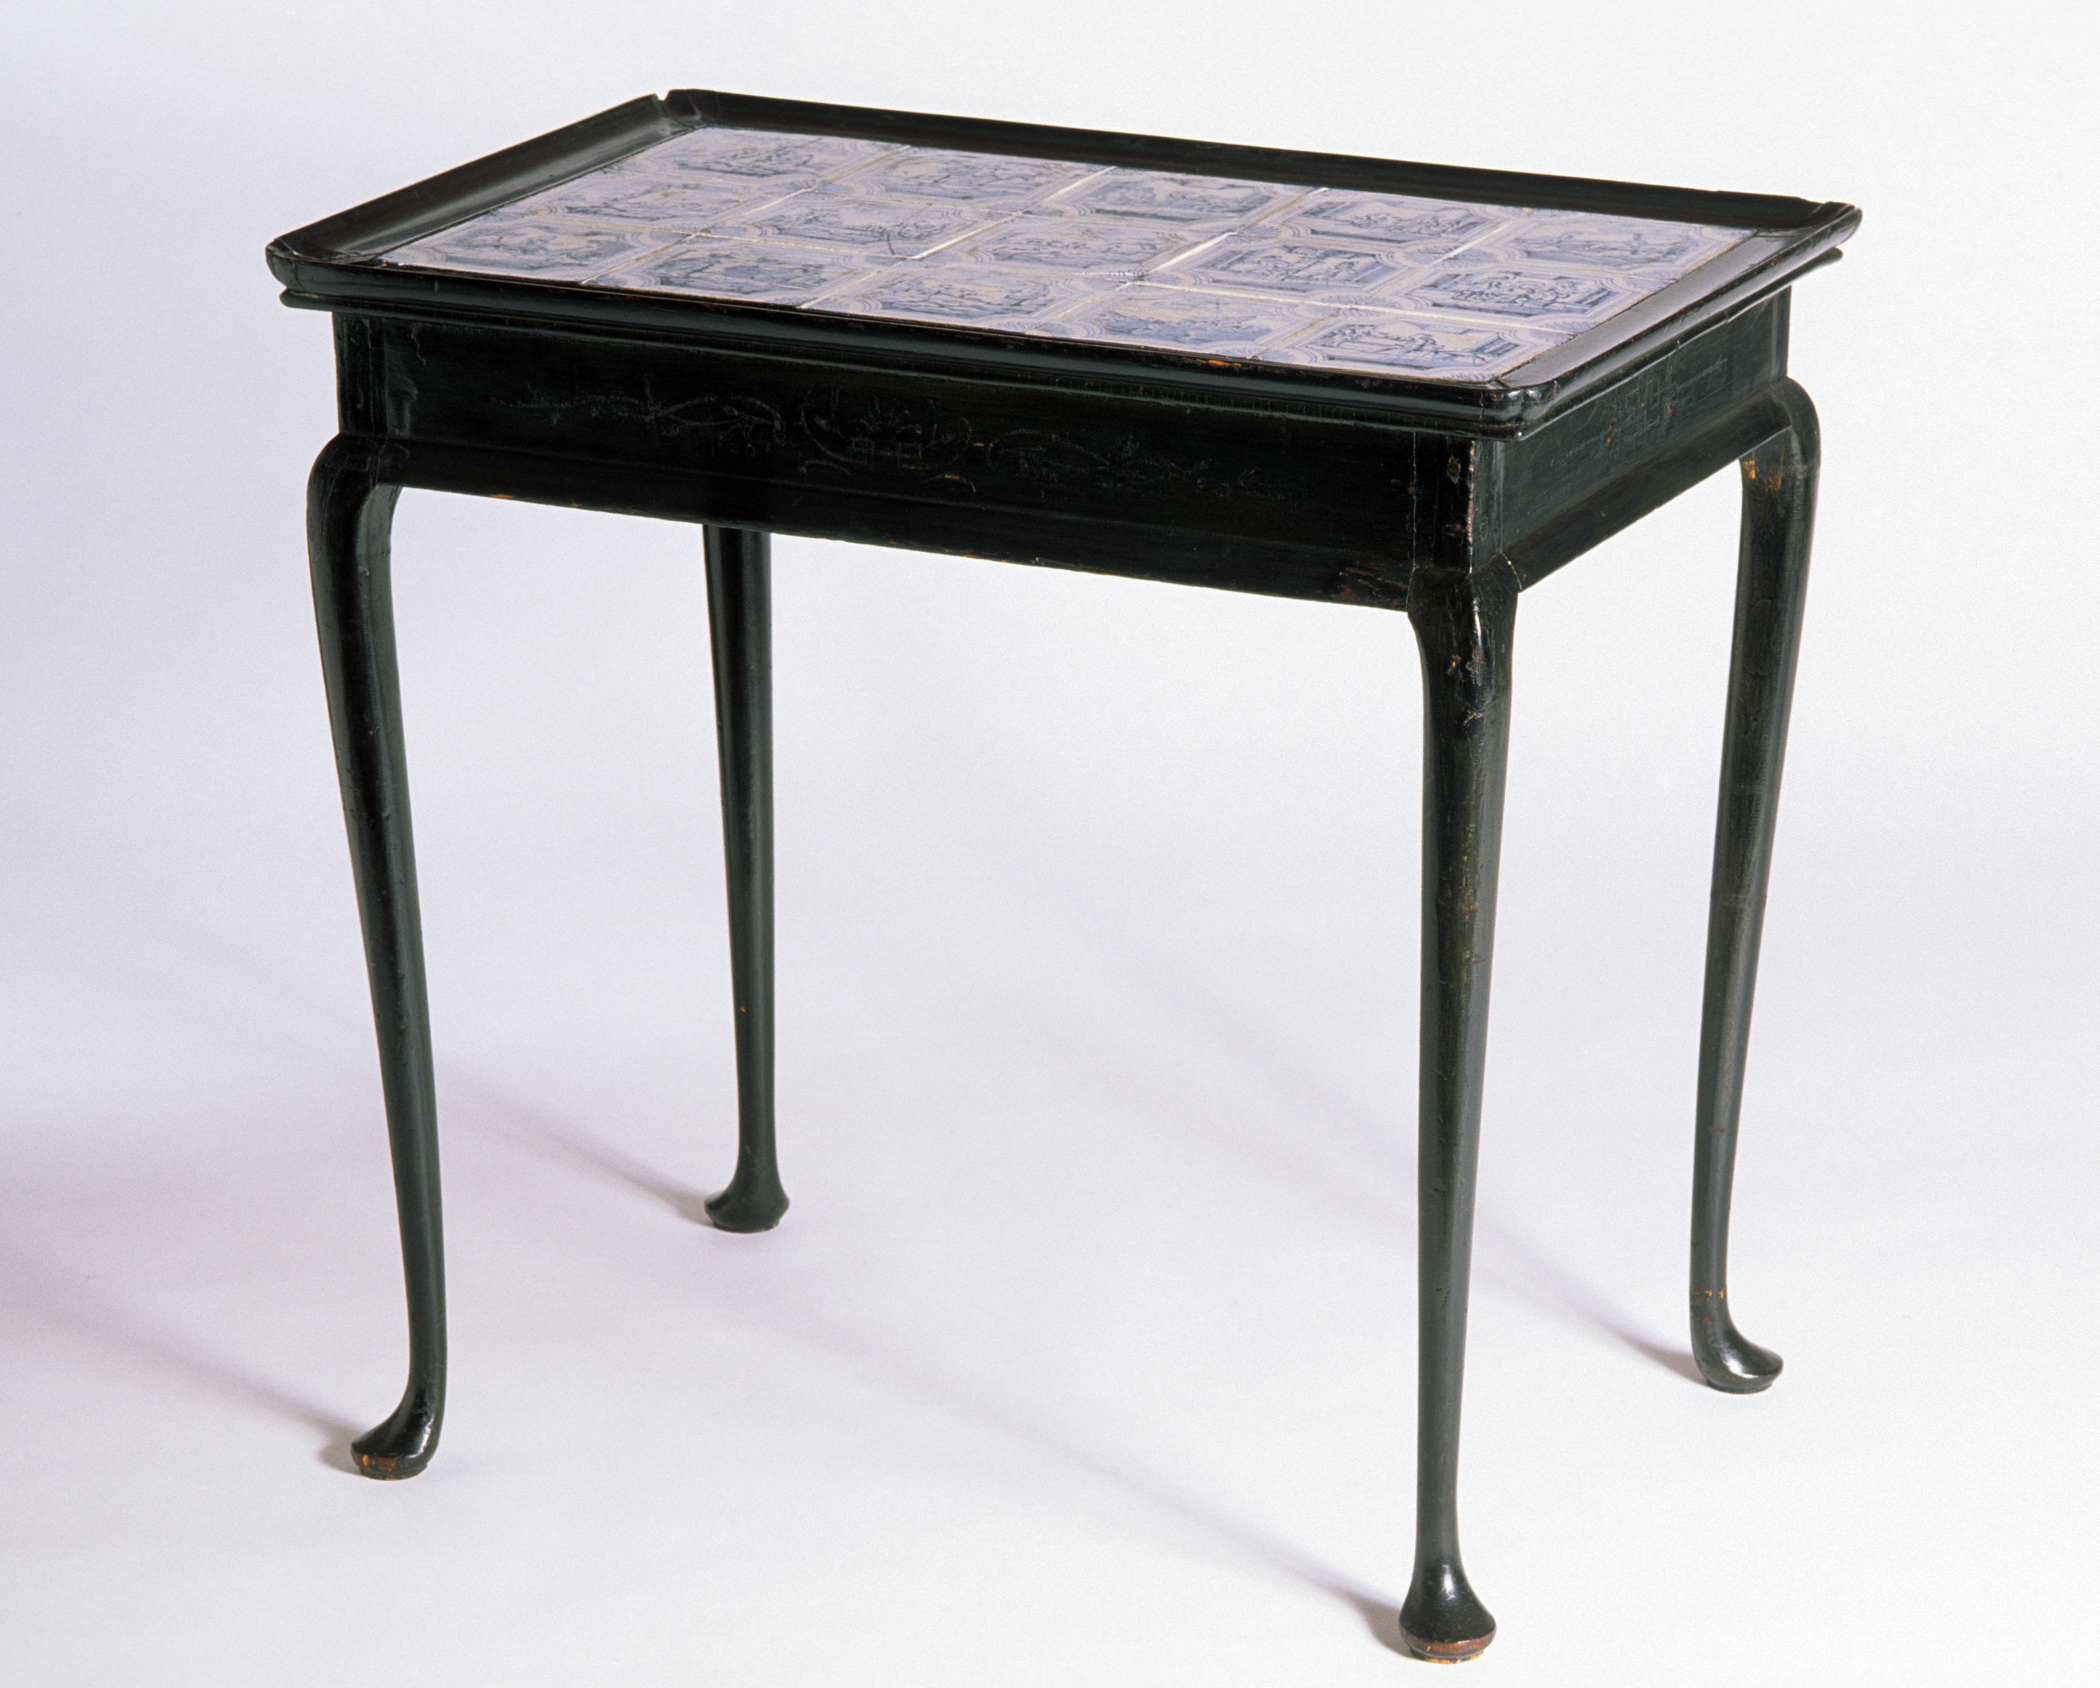 1958.1507 Table, tea table